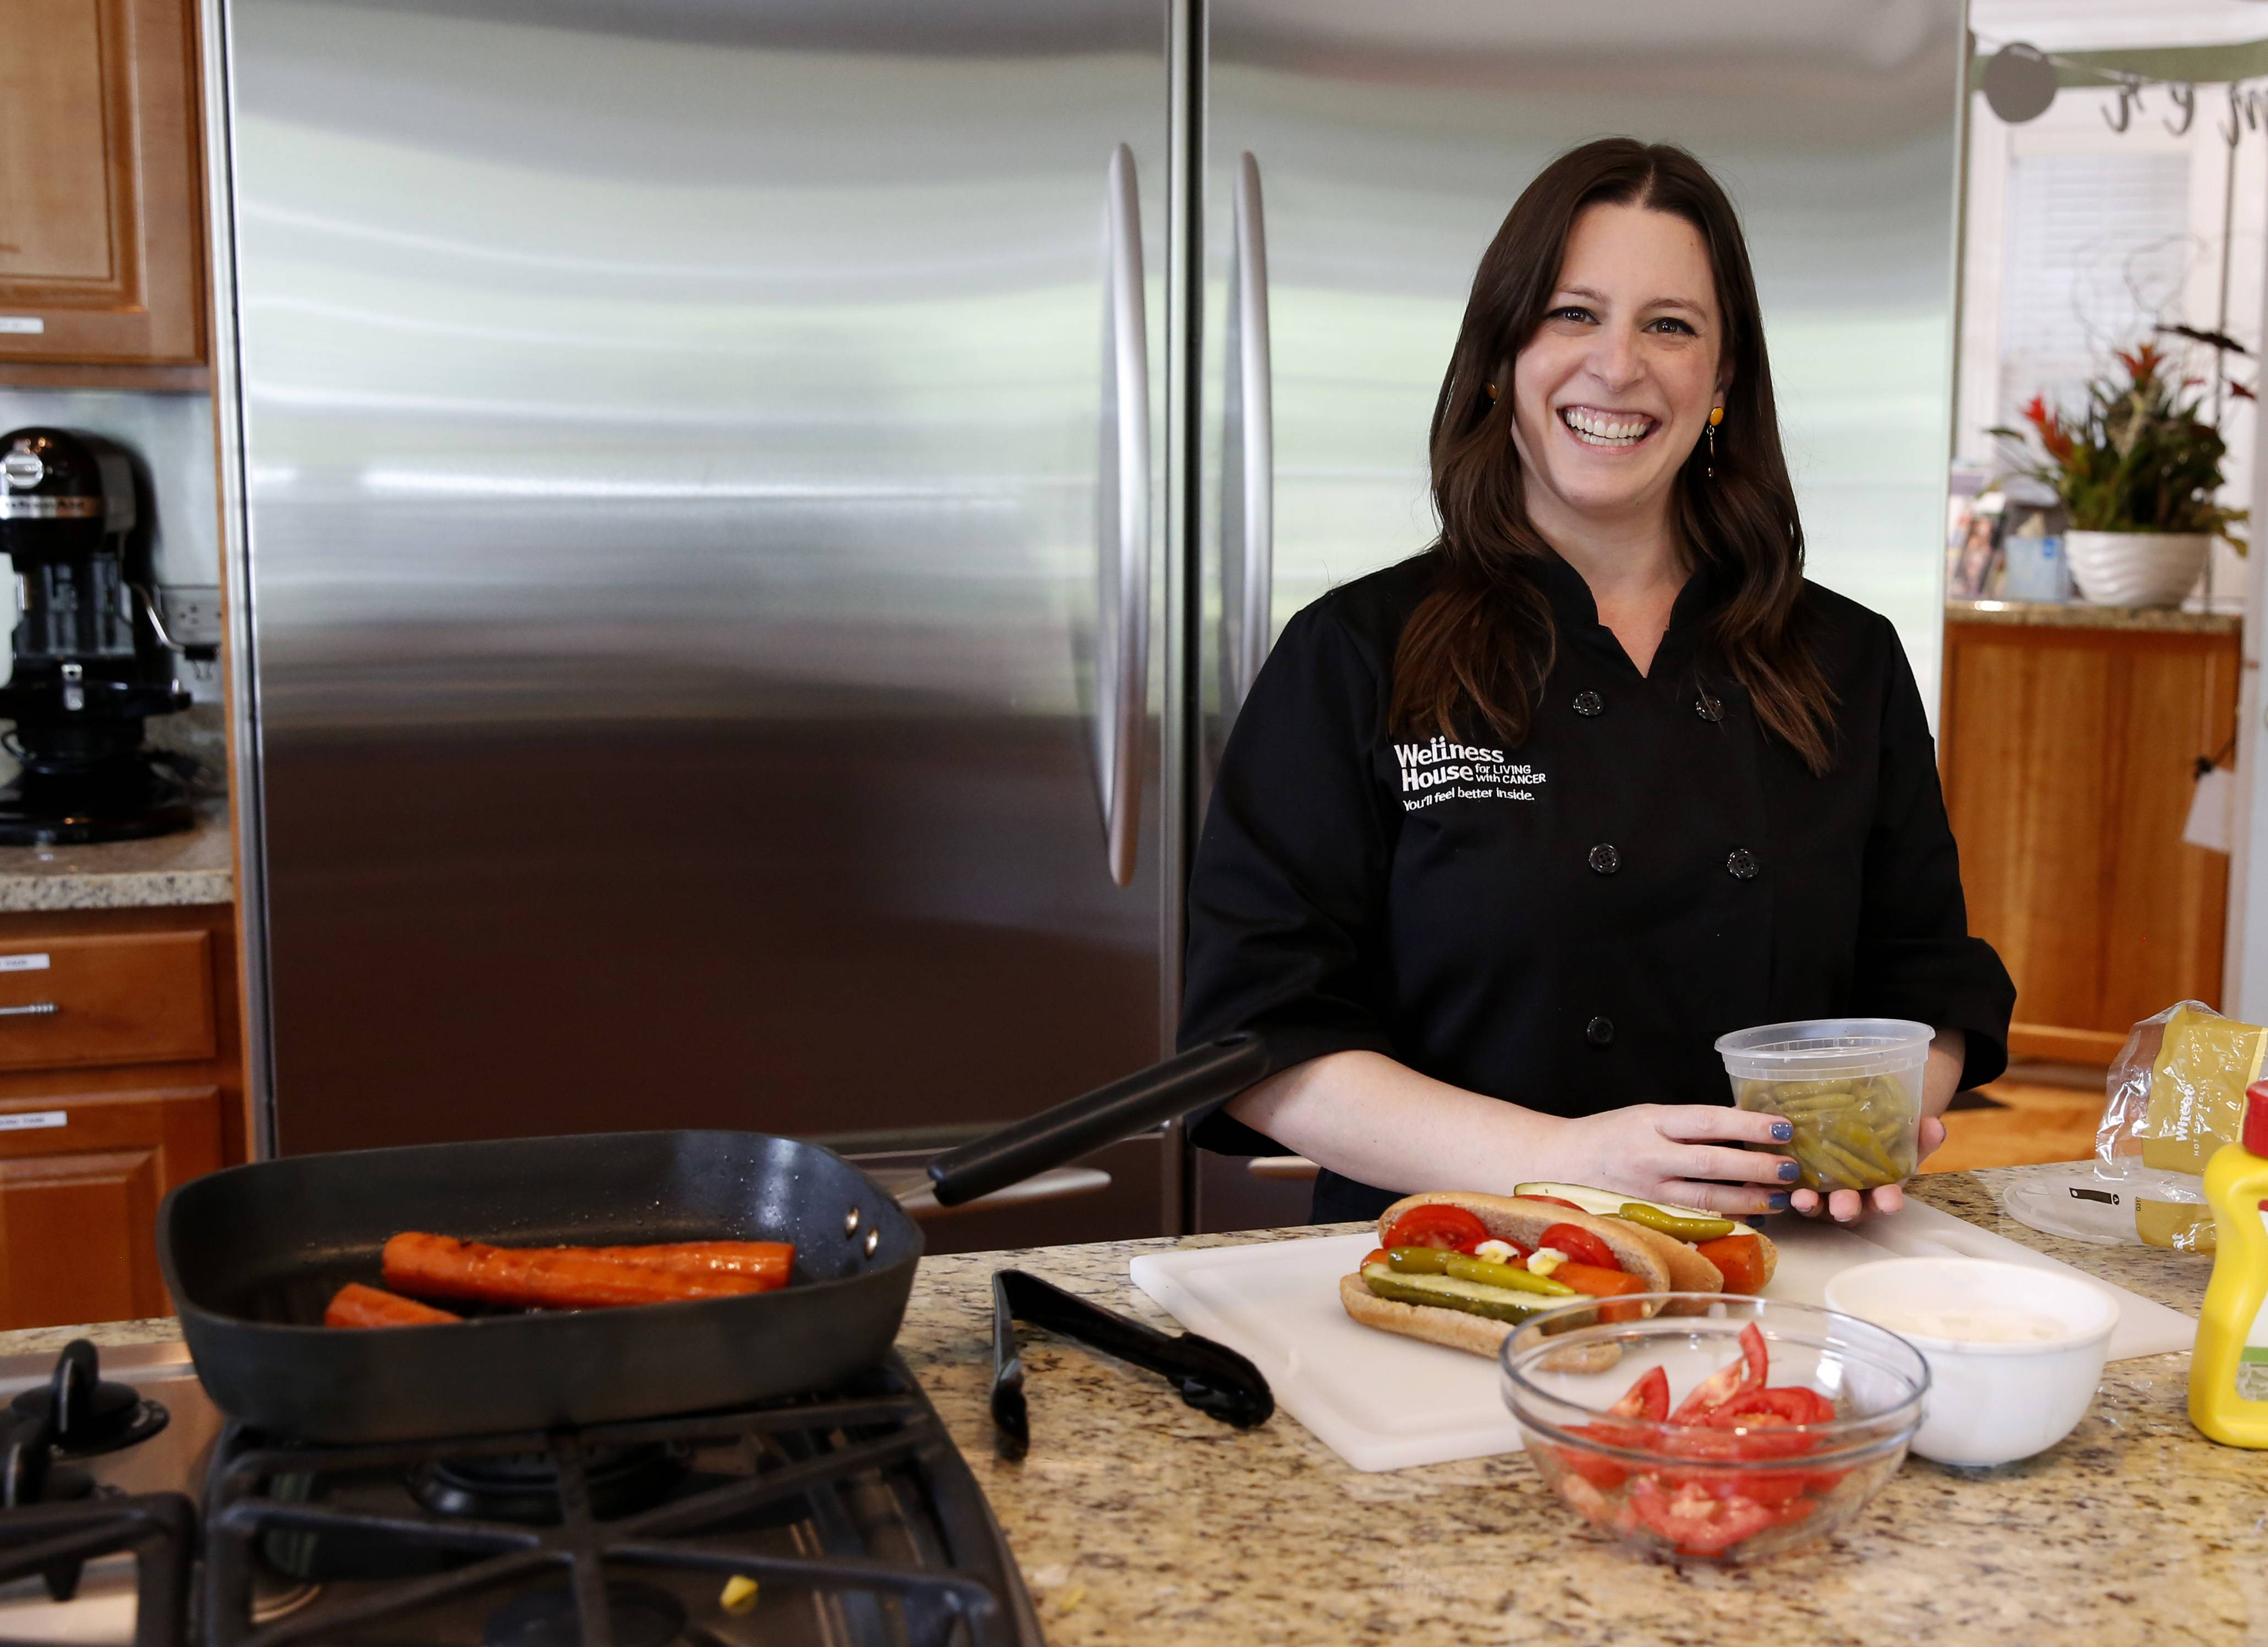 Angela Dennison, RD, LDN, oncology dietitian, for the Wellness House in Hinsdale sears carrots in Avocado oil to create a special Chicago style carrot dog.